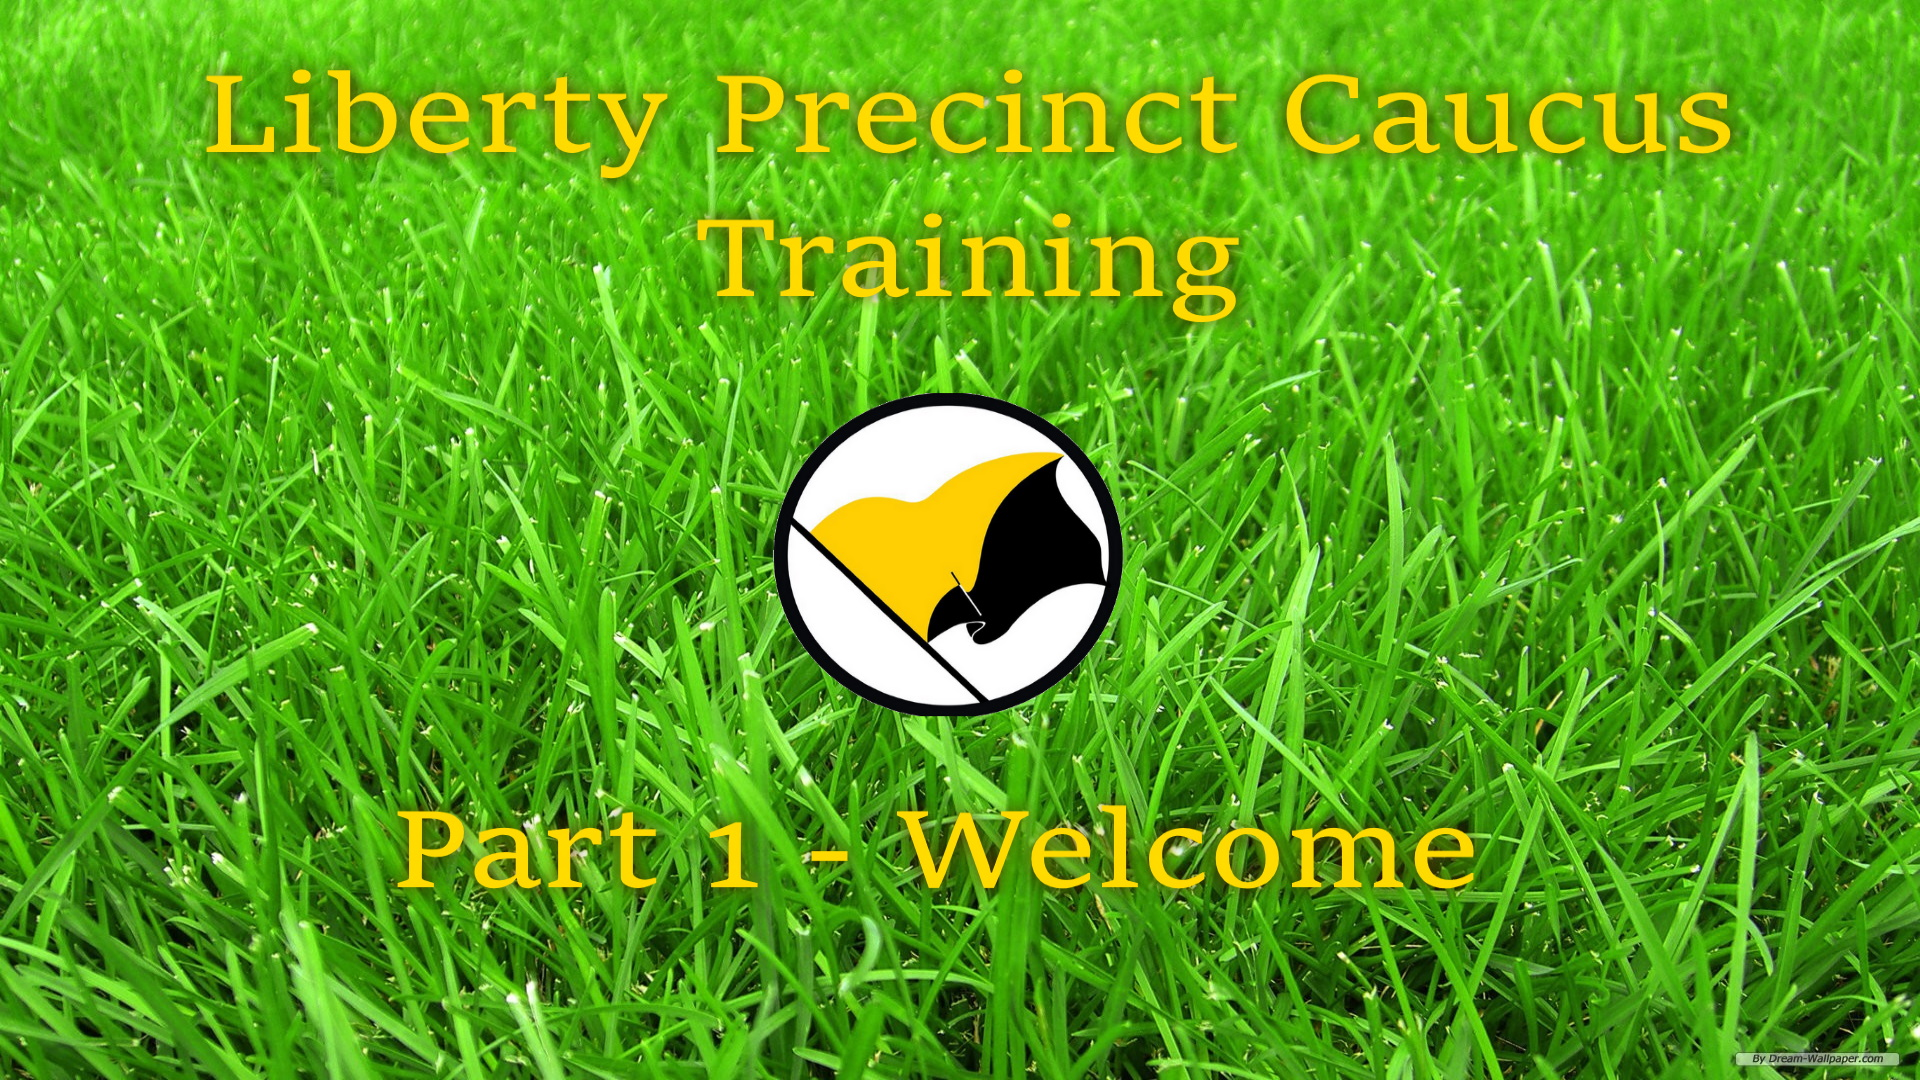 LPC Training Part 1 Welcome